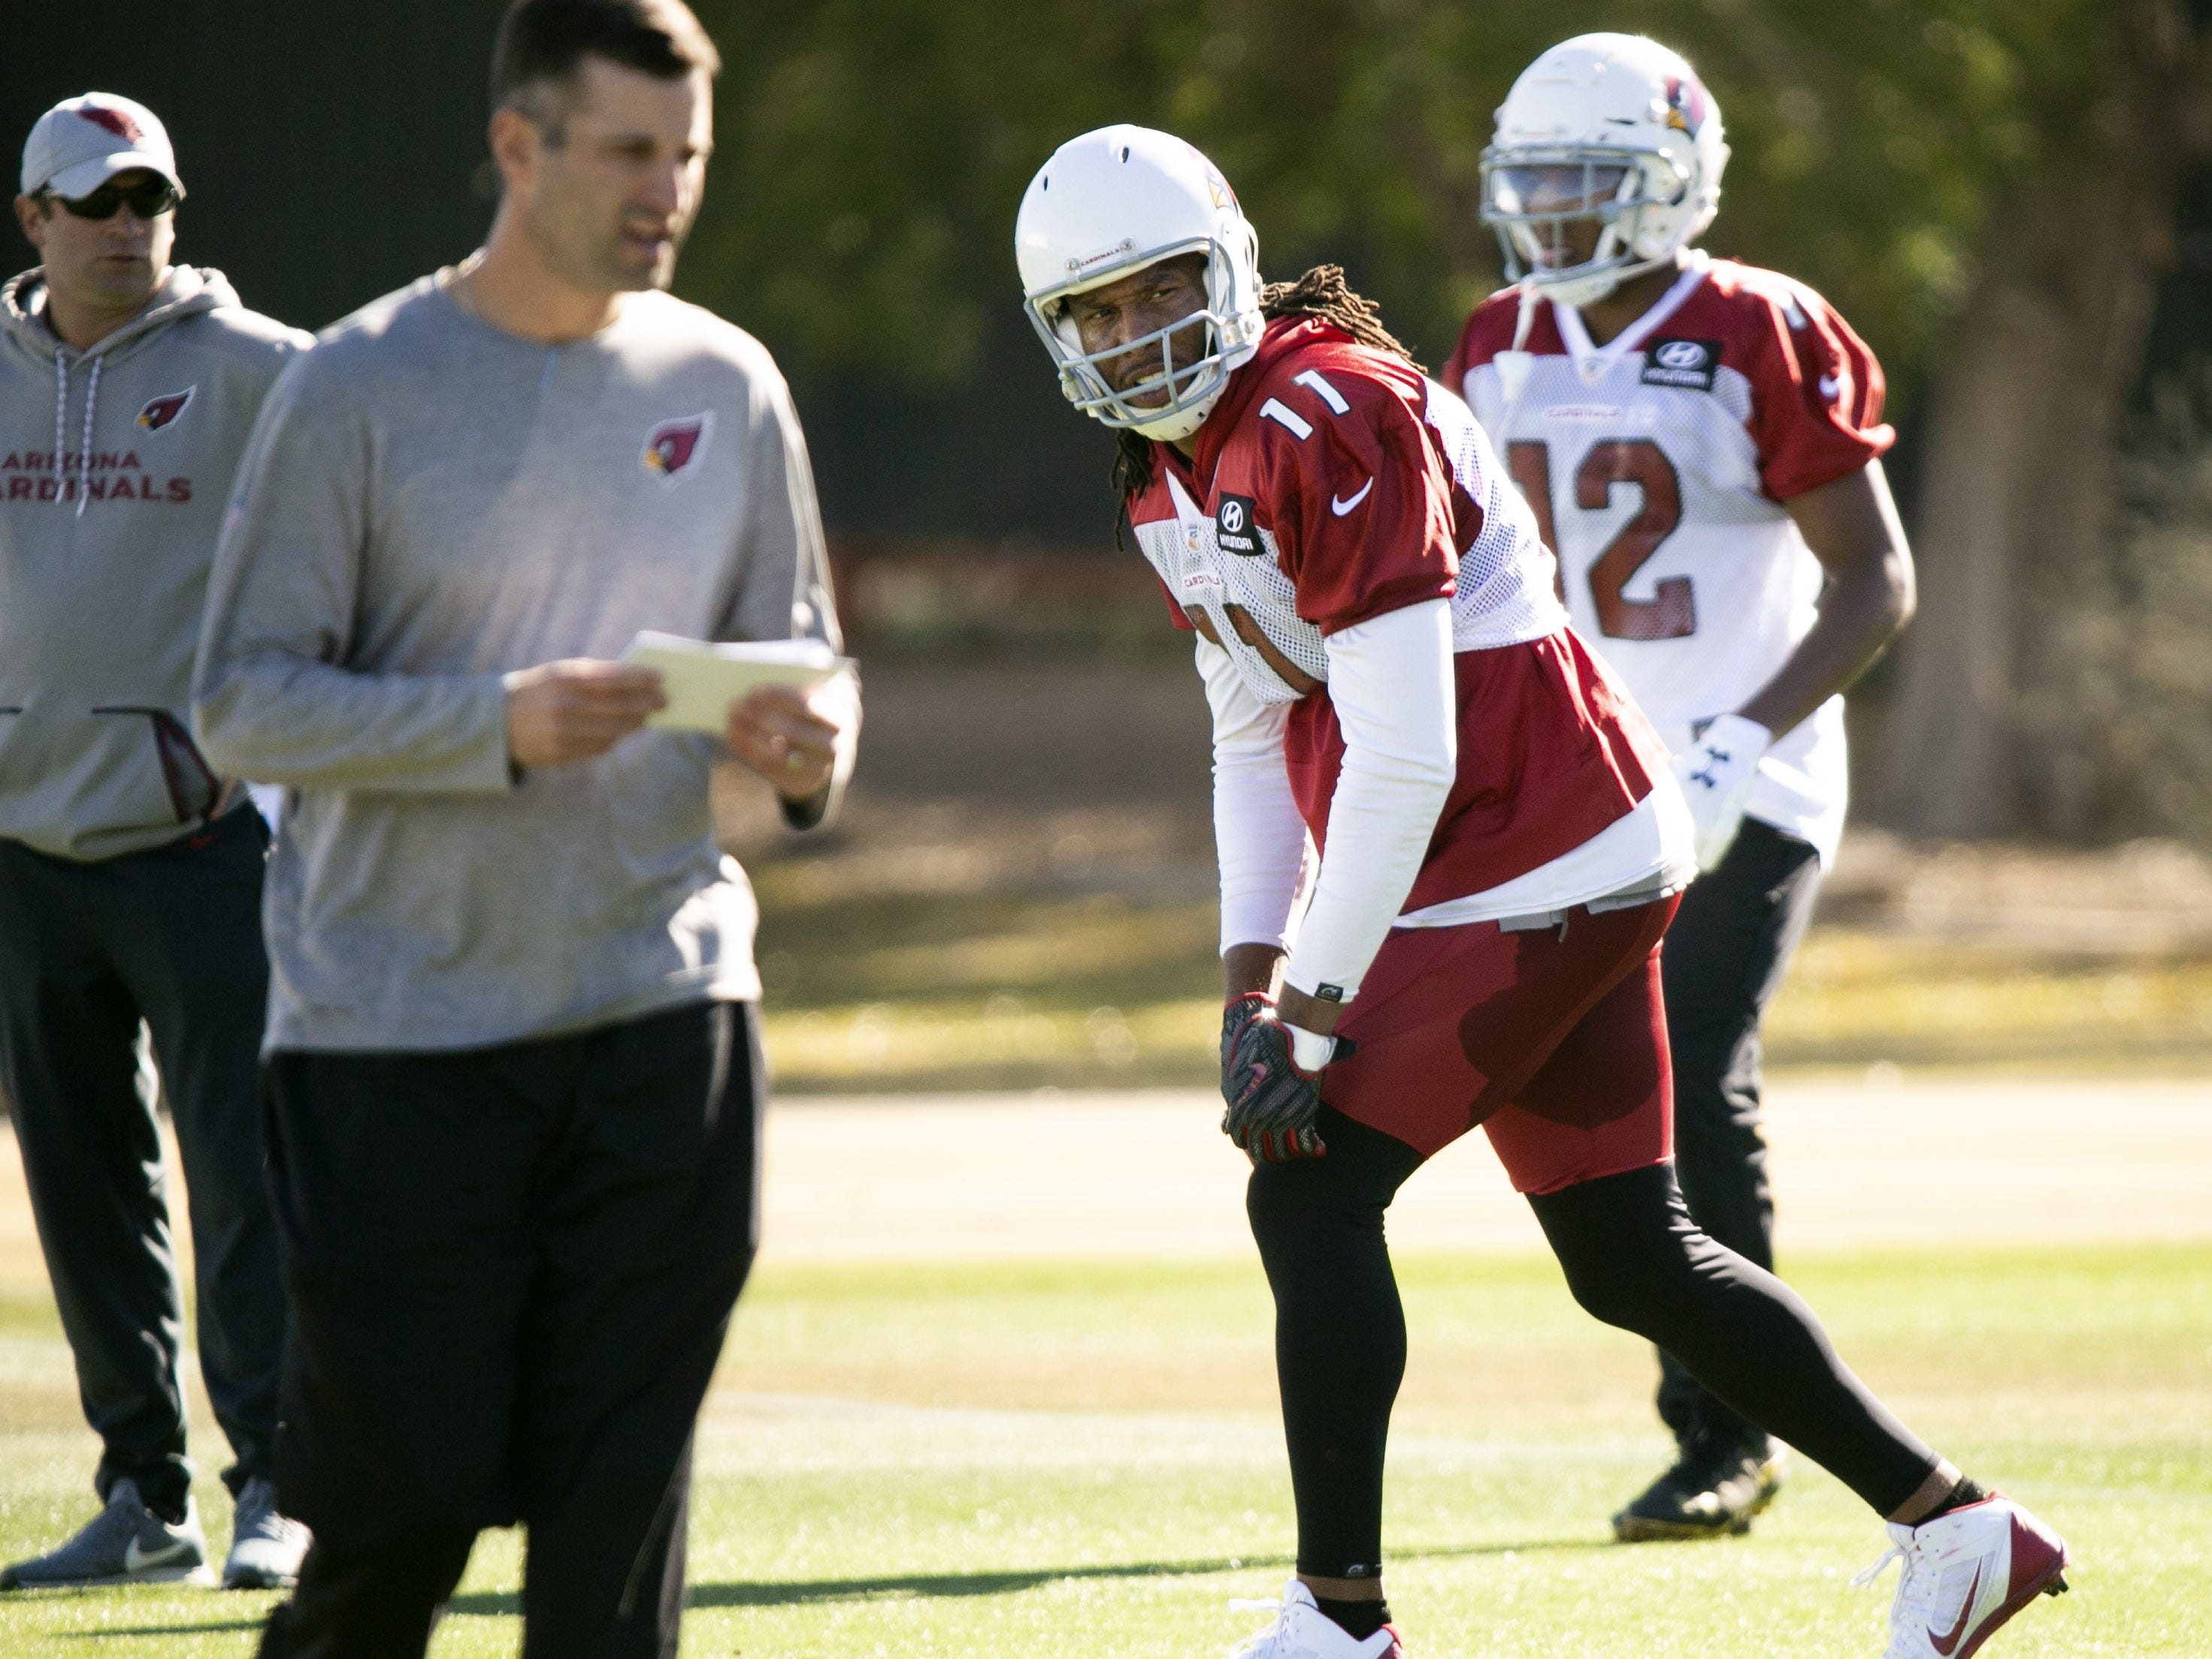 Cardinals wide receiver Larry Fitzgerald during a practice at the Cardinals training facility in Tempe on Thursday, December 27, 2018.